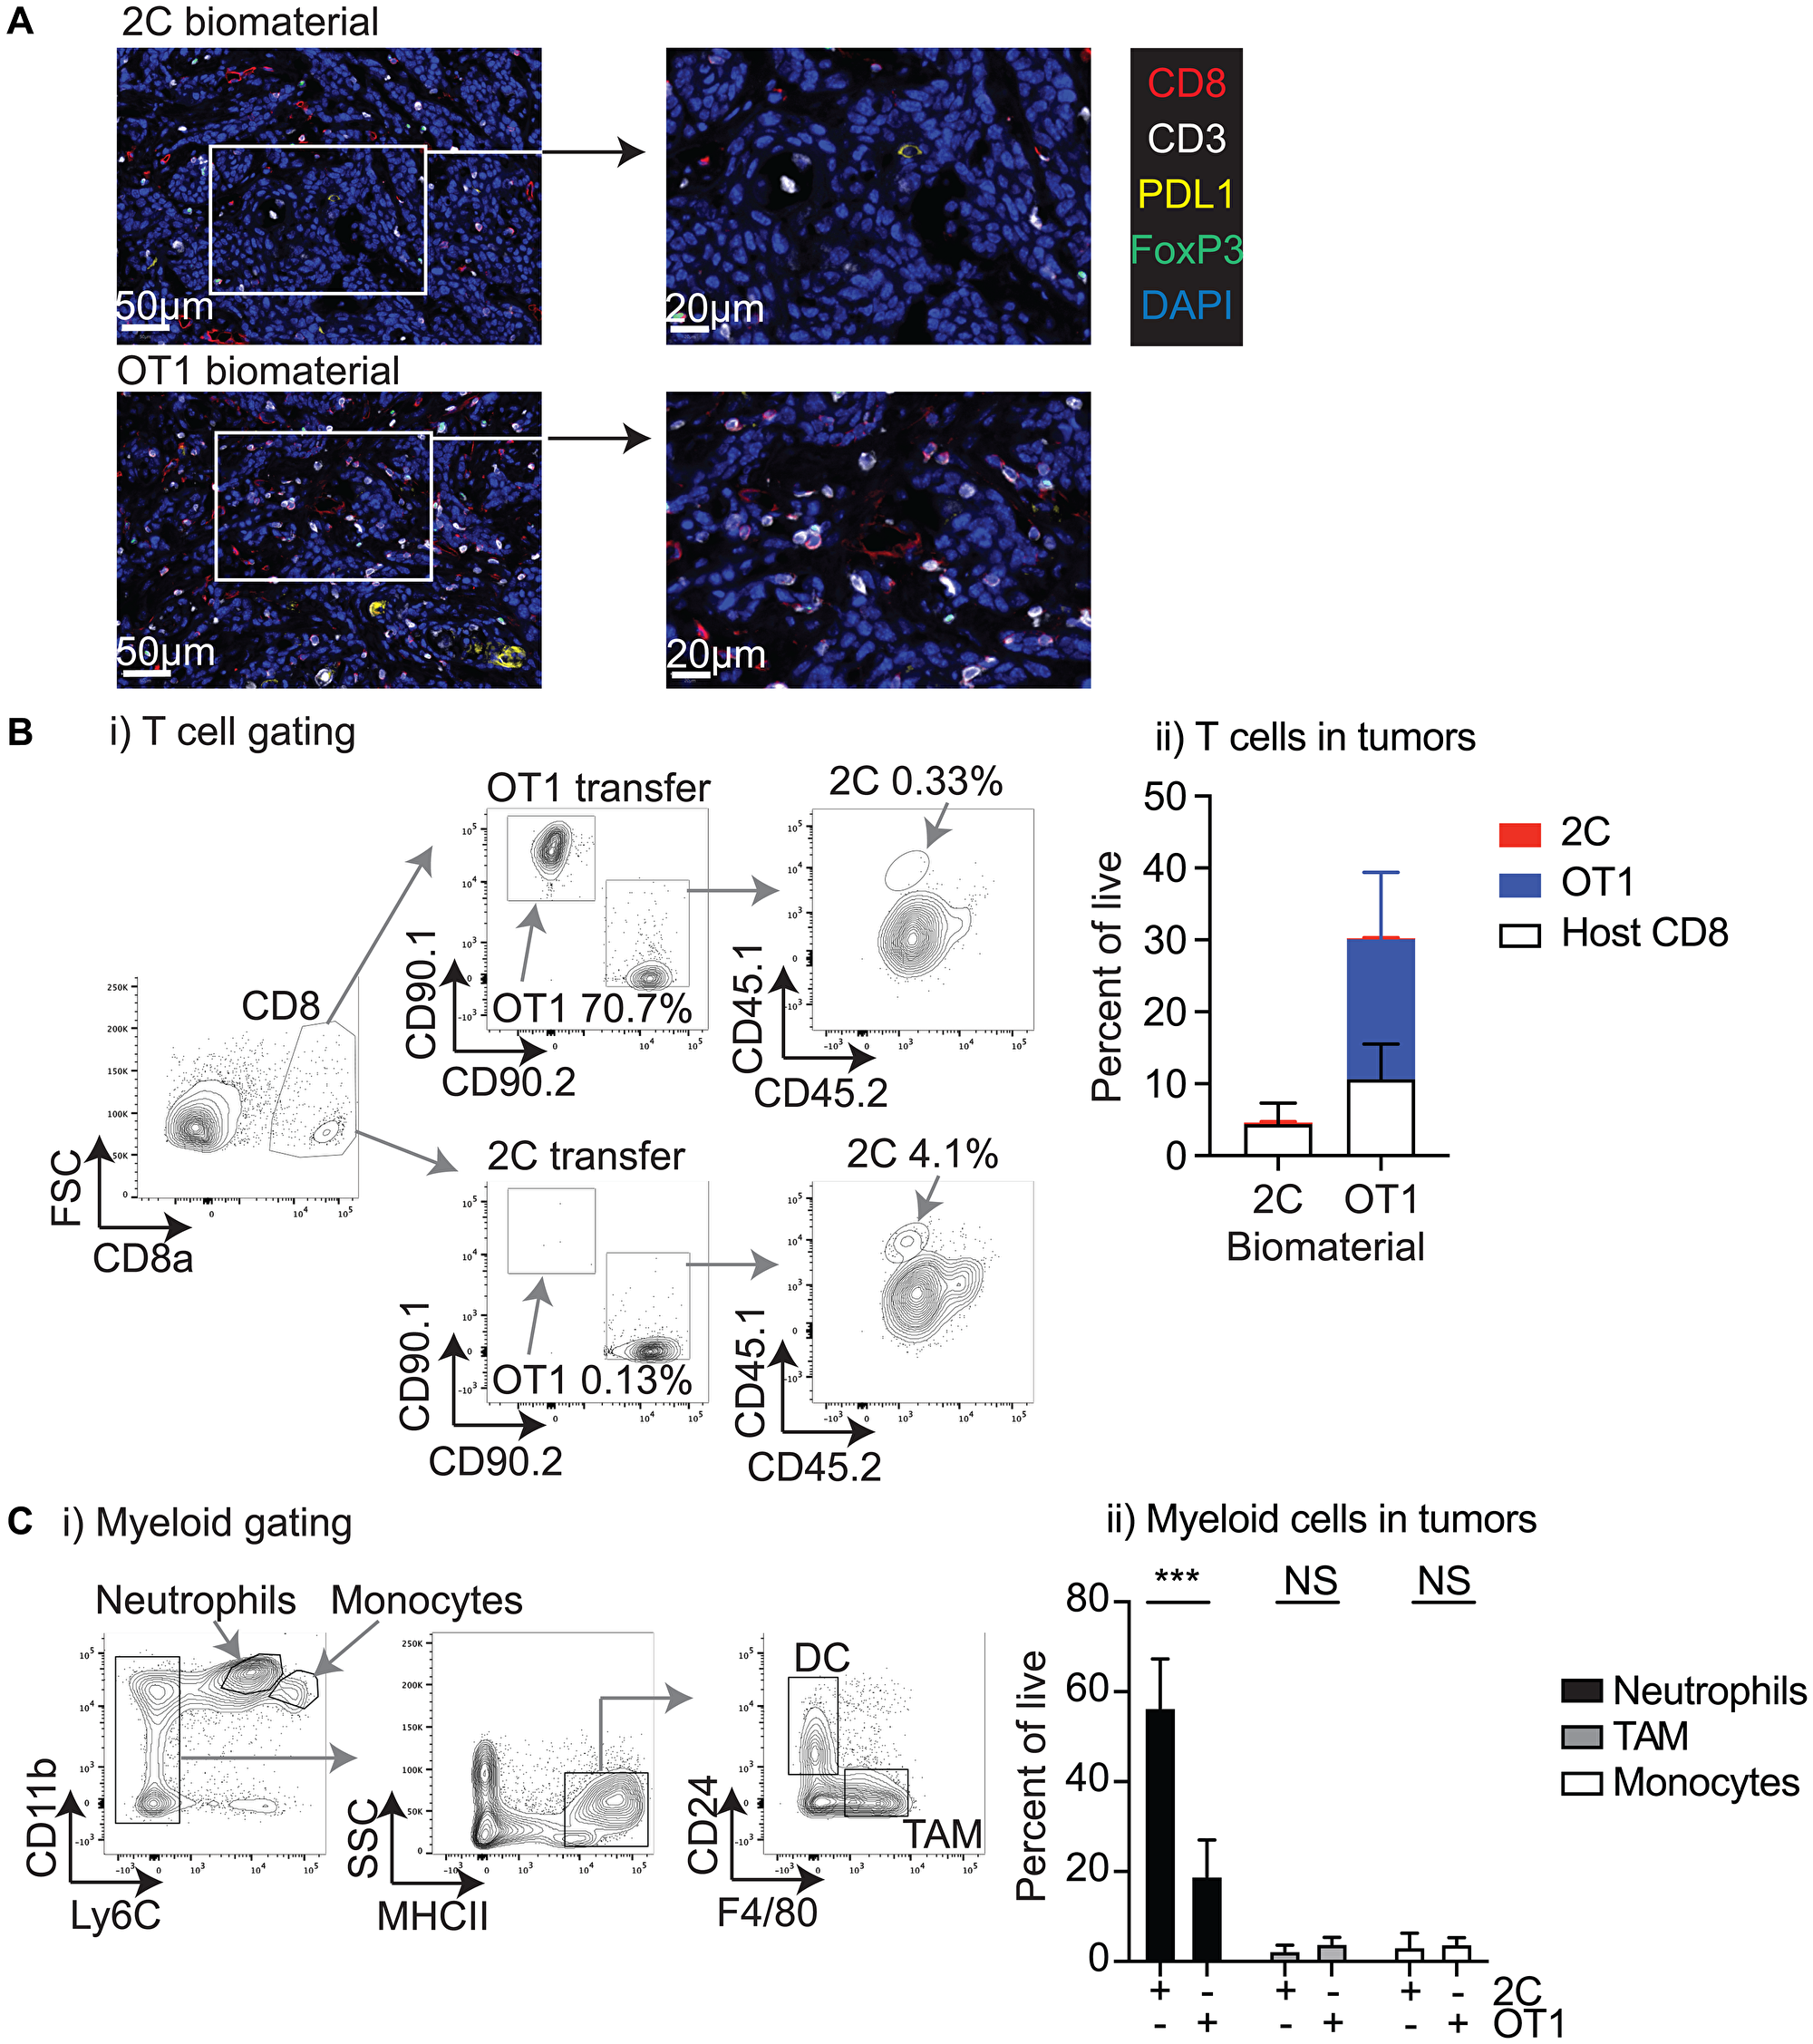 Characterization of the tumor environment following biomaterial injection.